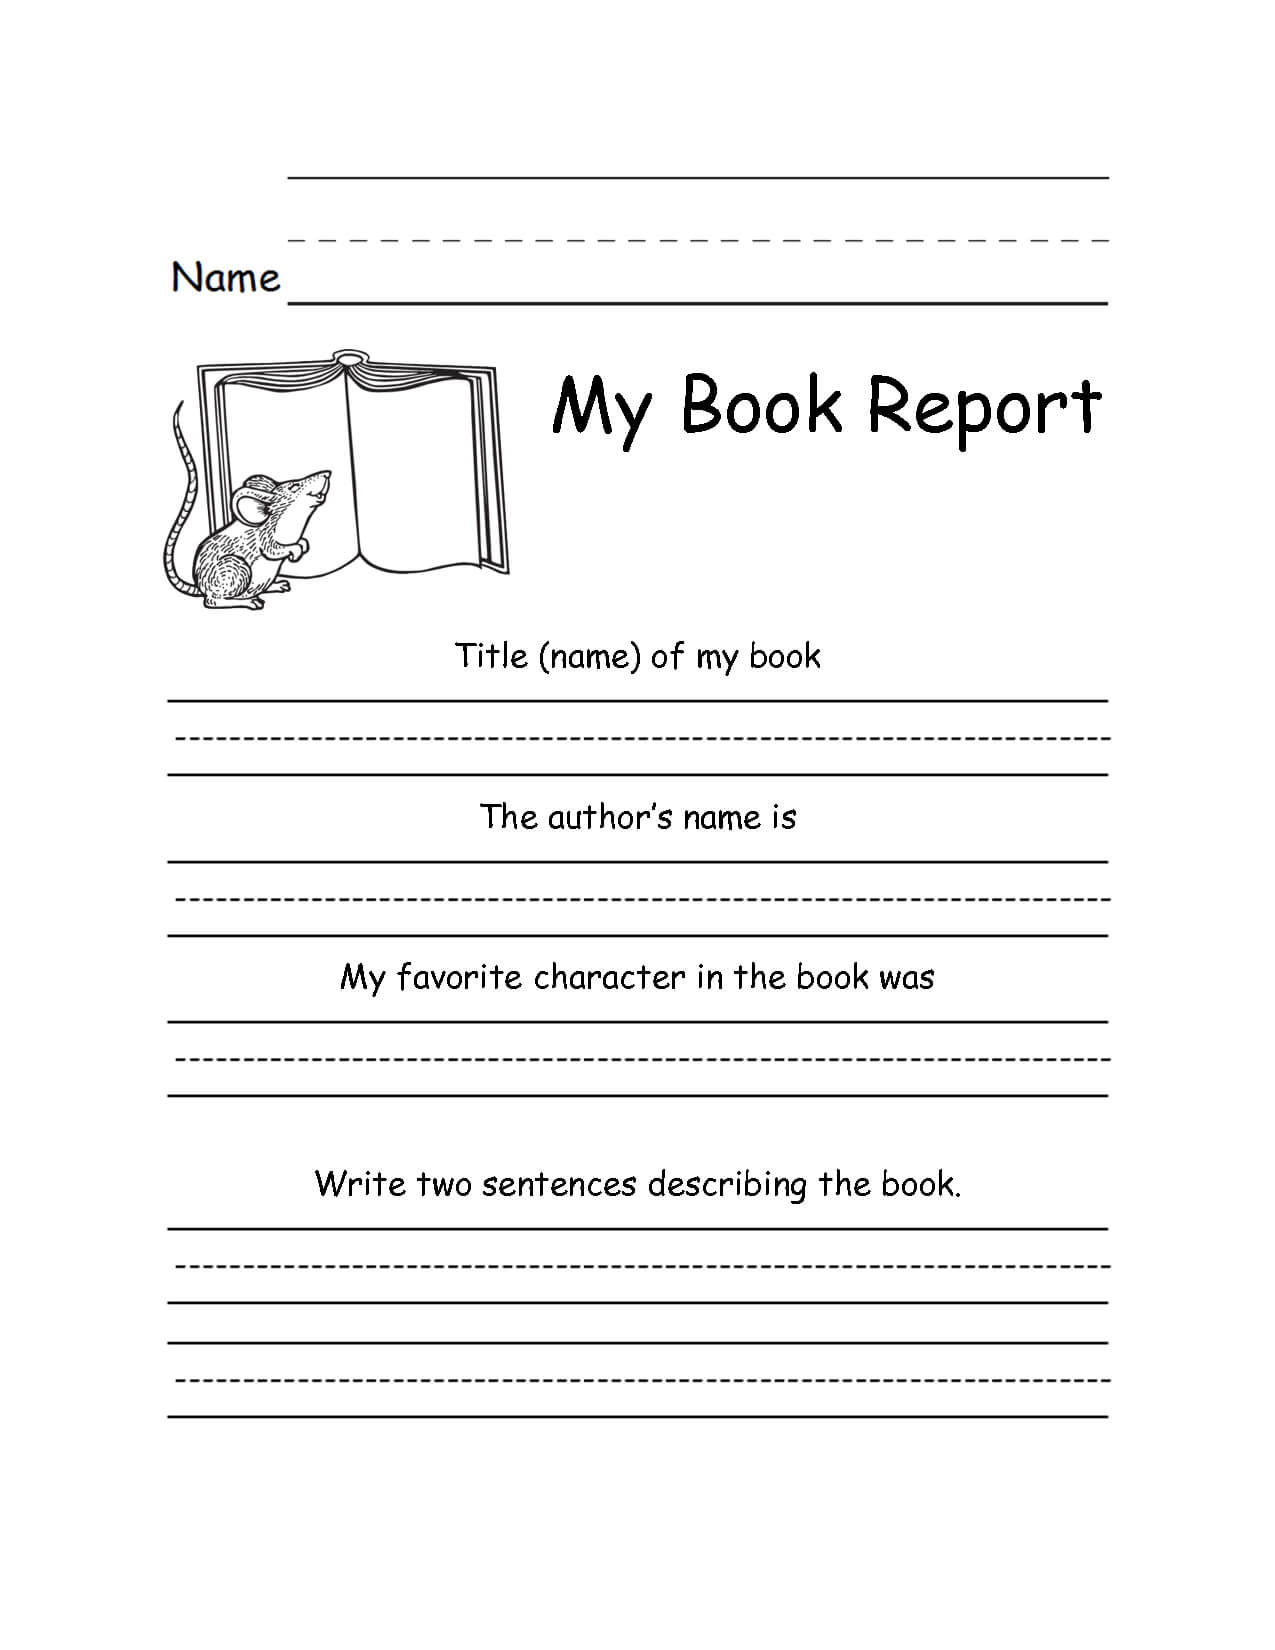 2Nd Grade Writing Worksheets | Book Report Templates, 2Nd Inside Book Report Template 2Nd Grade